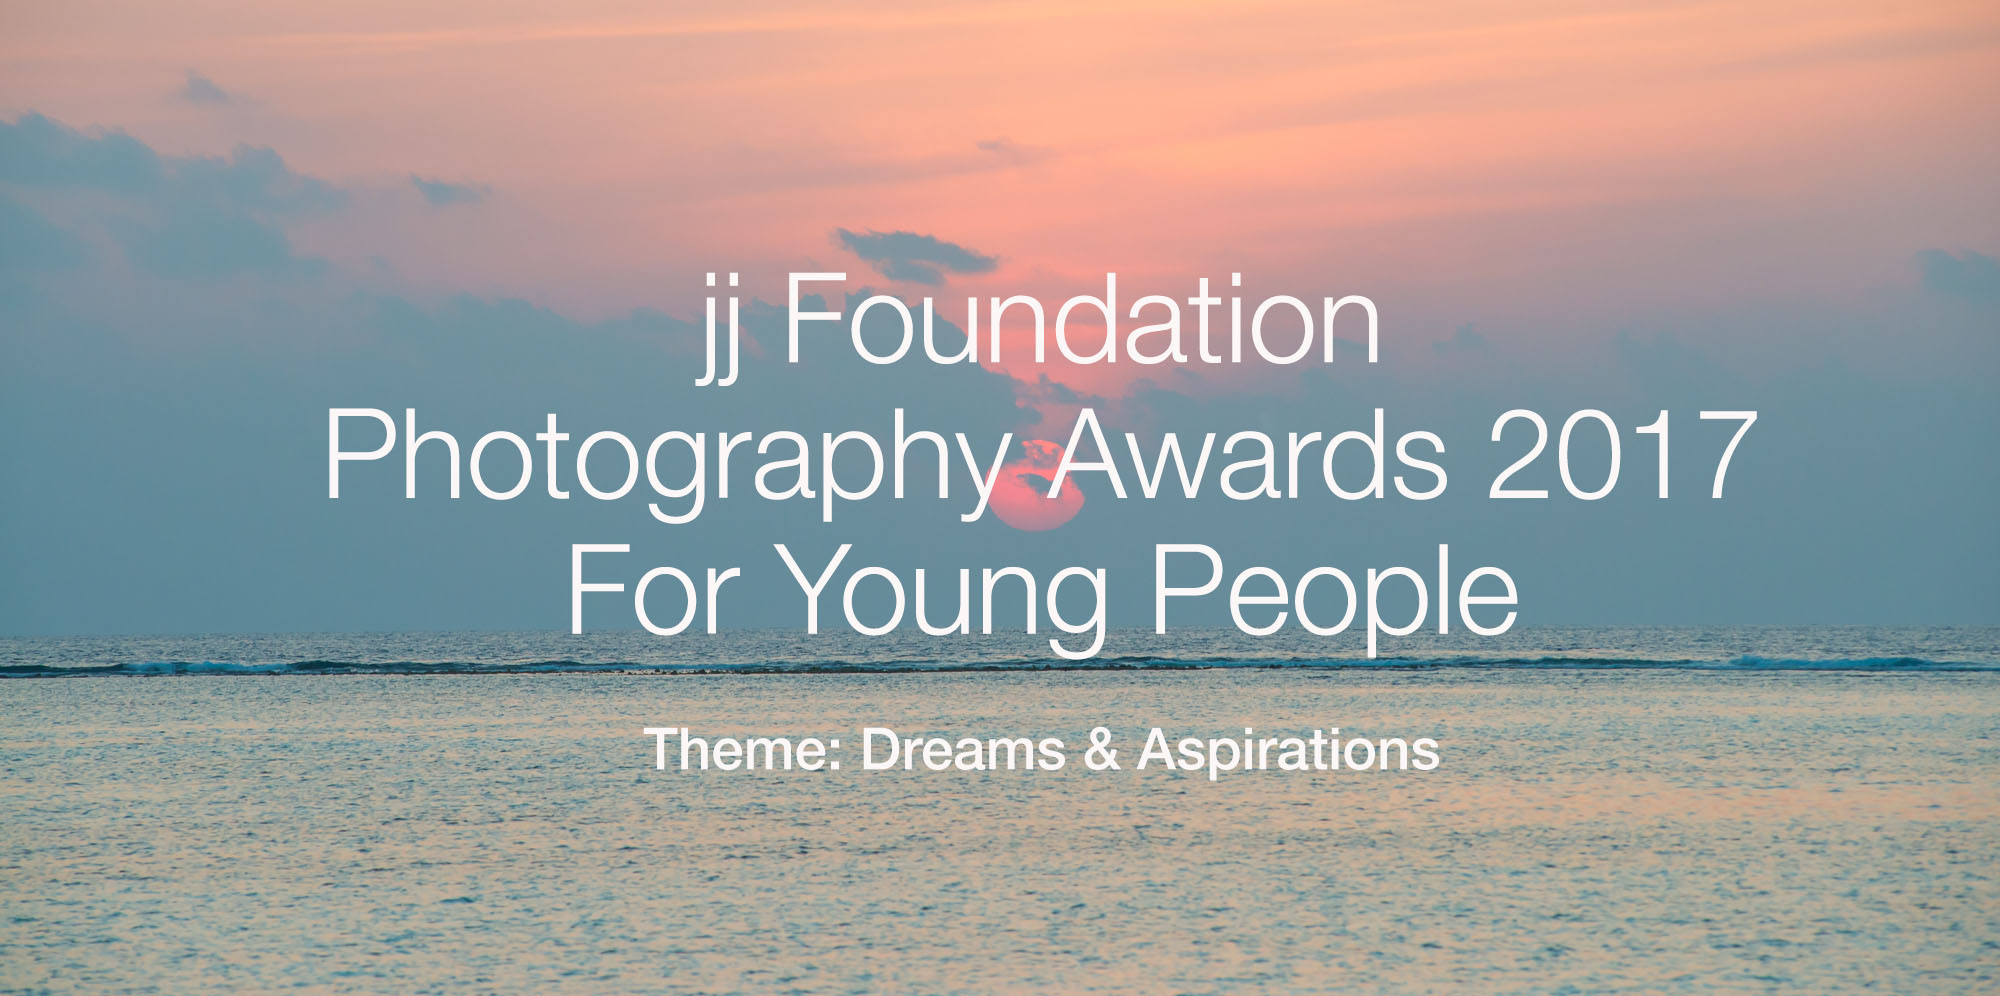 The foundation aims to inspire, support and motivate young photographers and filmmakers in the pursuit of their creative goals and careers.